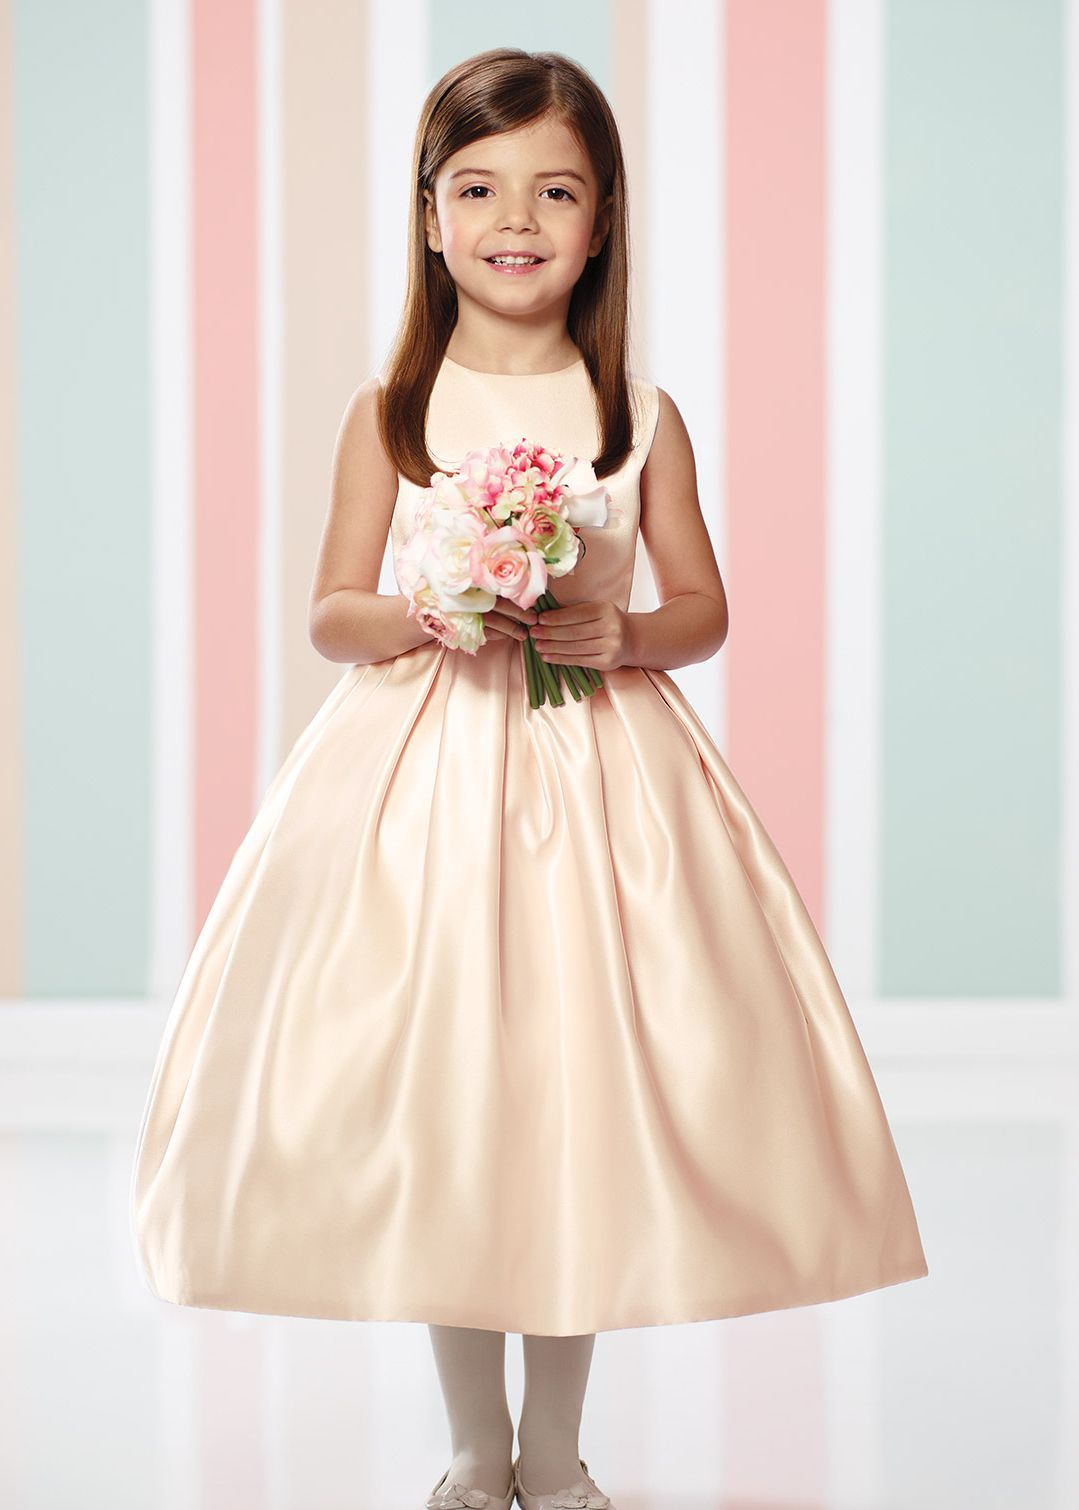 Ivory lace champagne satin tea length wedding flower girl dress